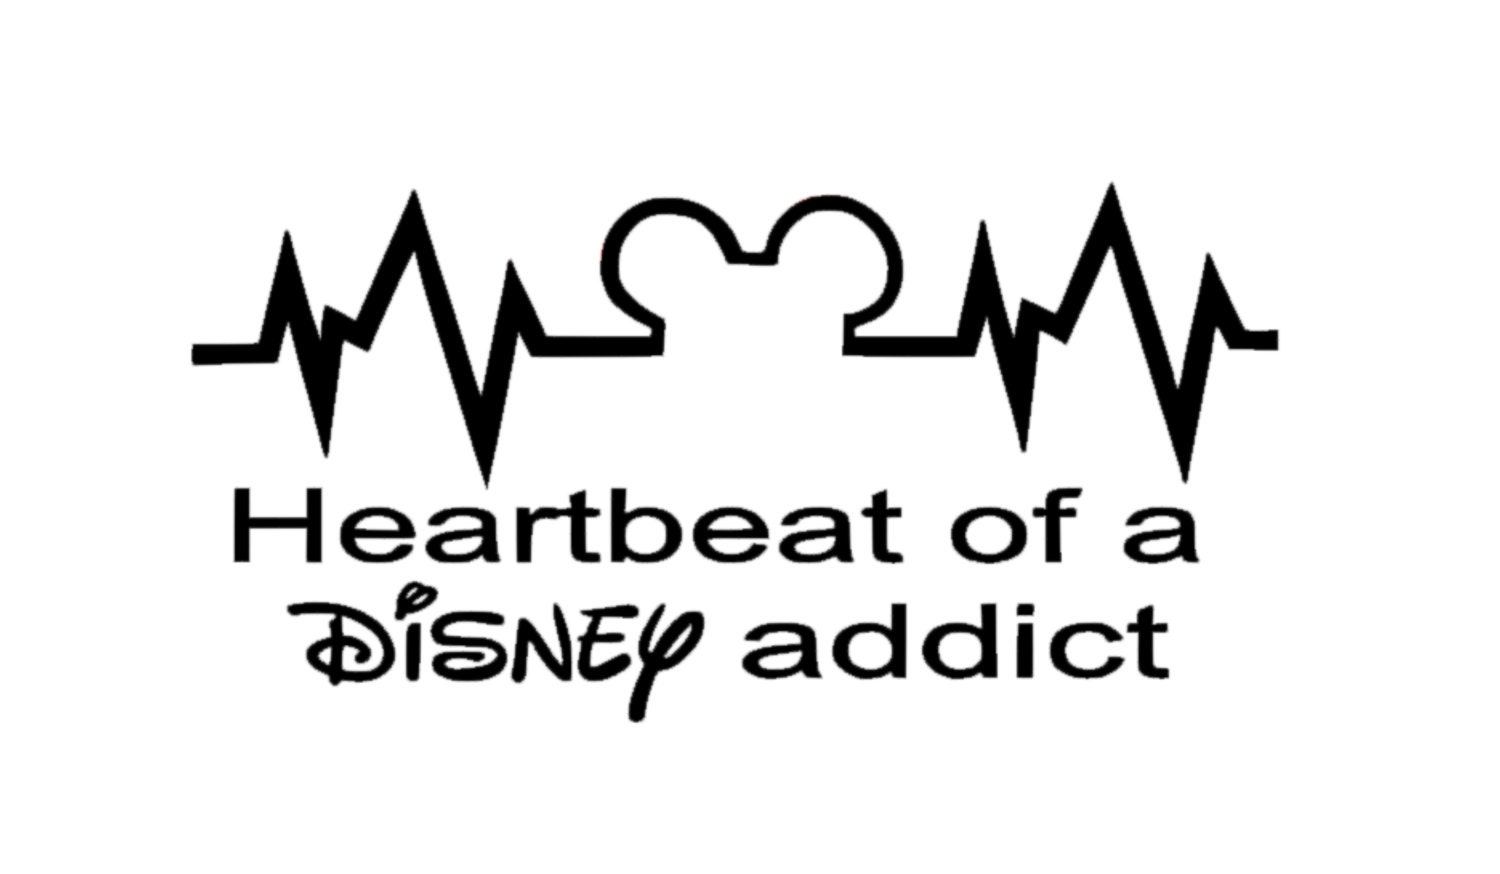 Heartbeat Of A Disney Addict Decal Disney Decal Disney